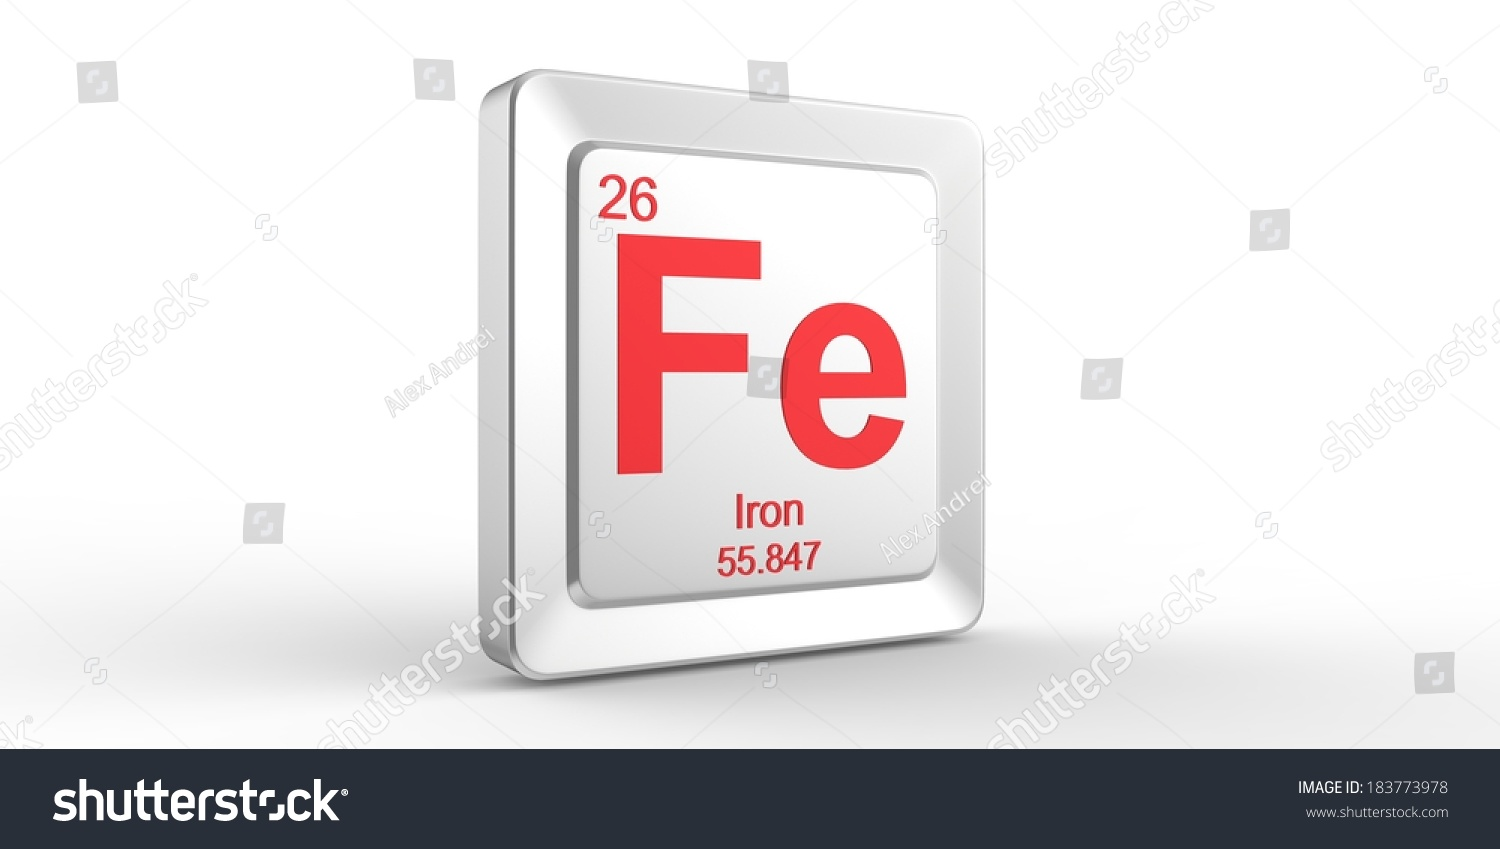 Fe symbol 26 material iron chemical stock illustration 183773978 fe symbol 26 material for iron chemical element of the periodic table gamestrikefo Image collections